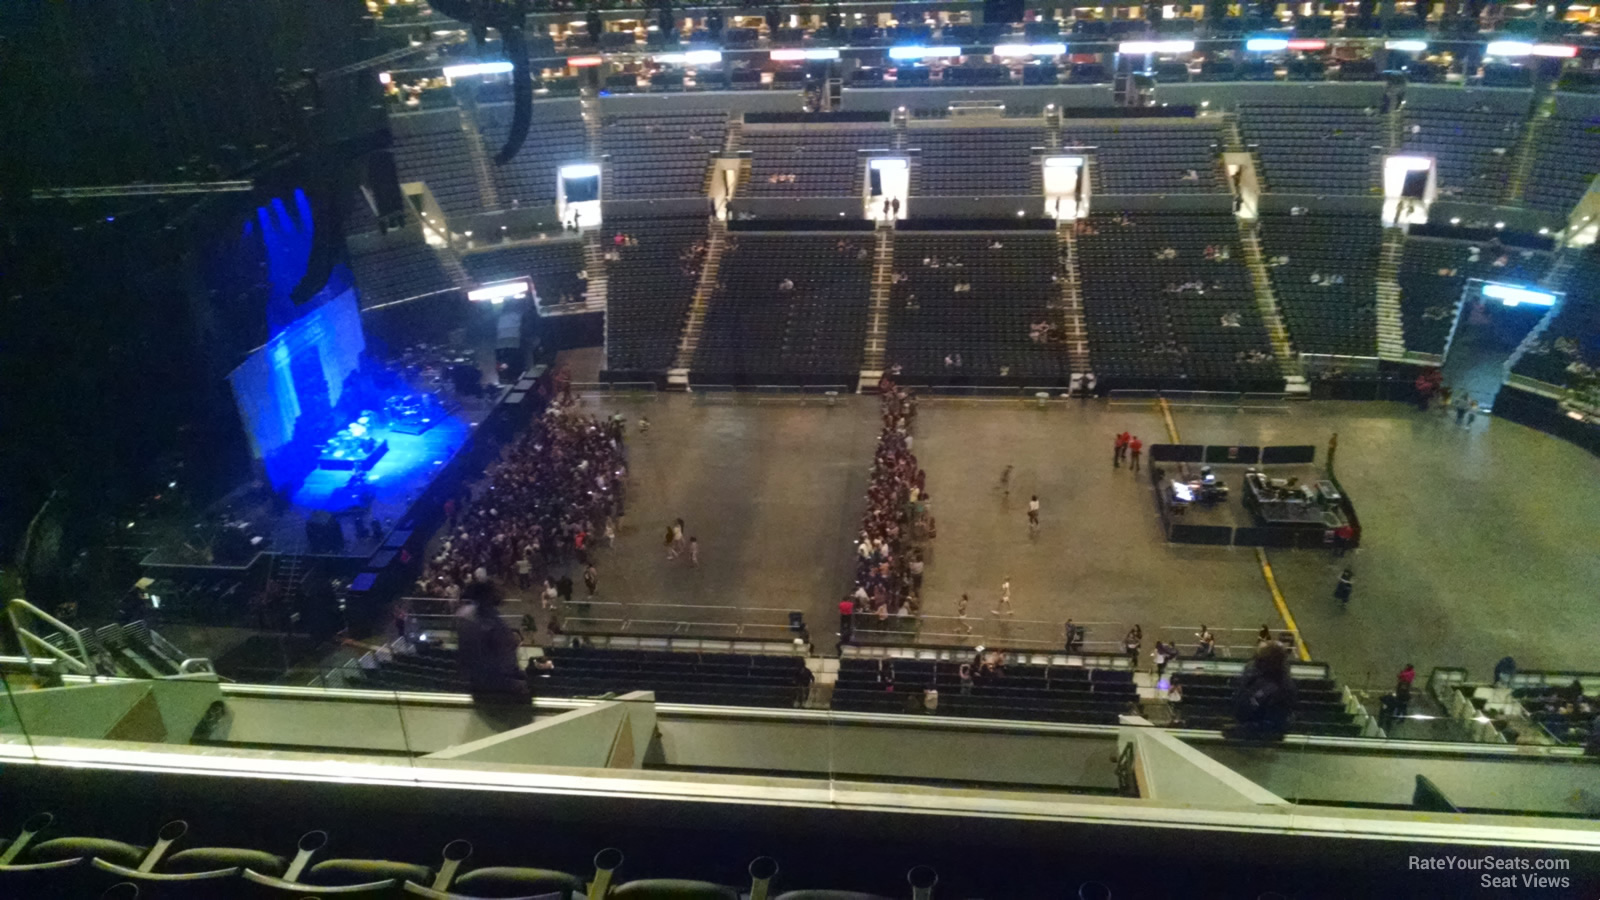 Staples Center Section 318 Concert Seating Rateyourseats Com